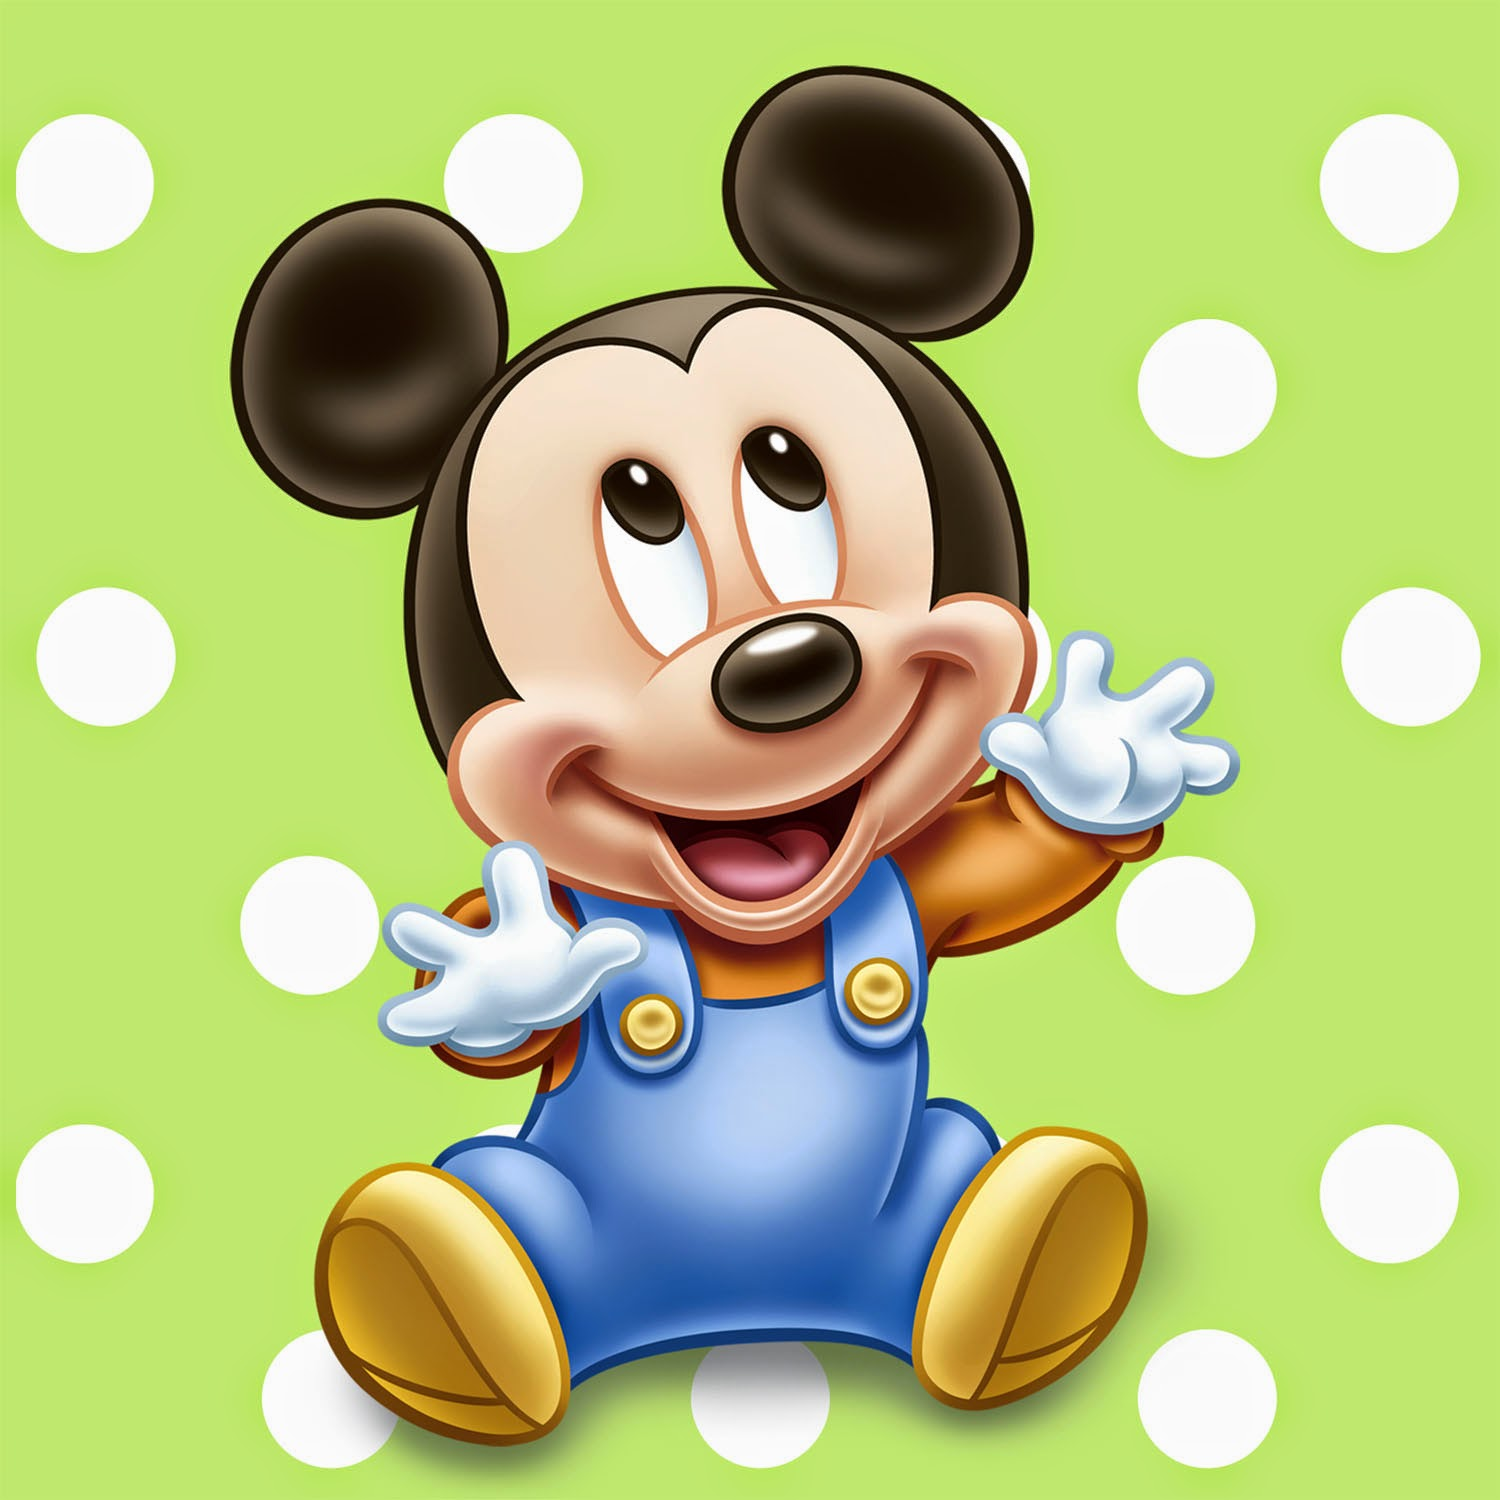 Mickey Mouse Baby, part 1